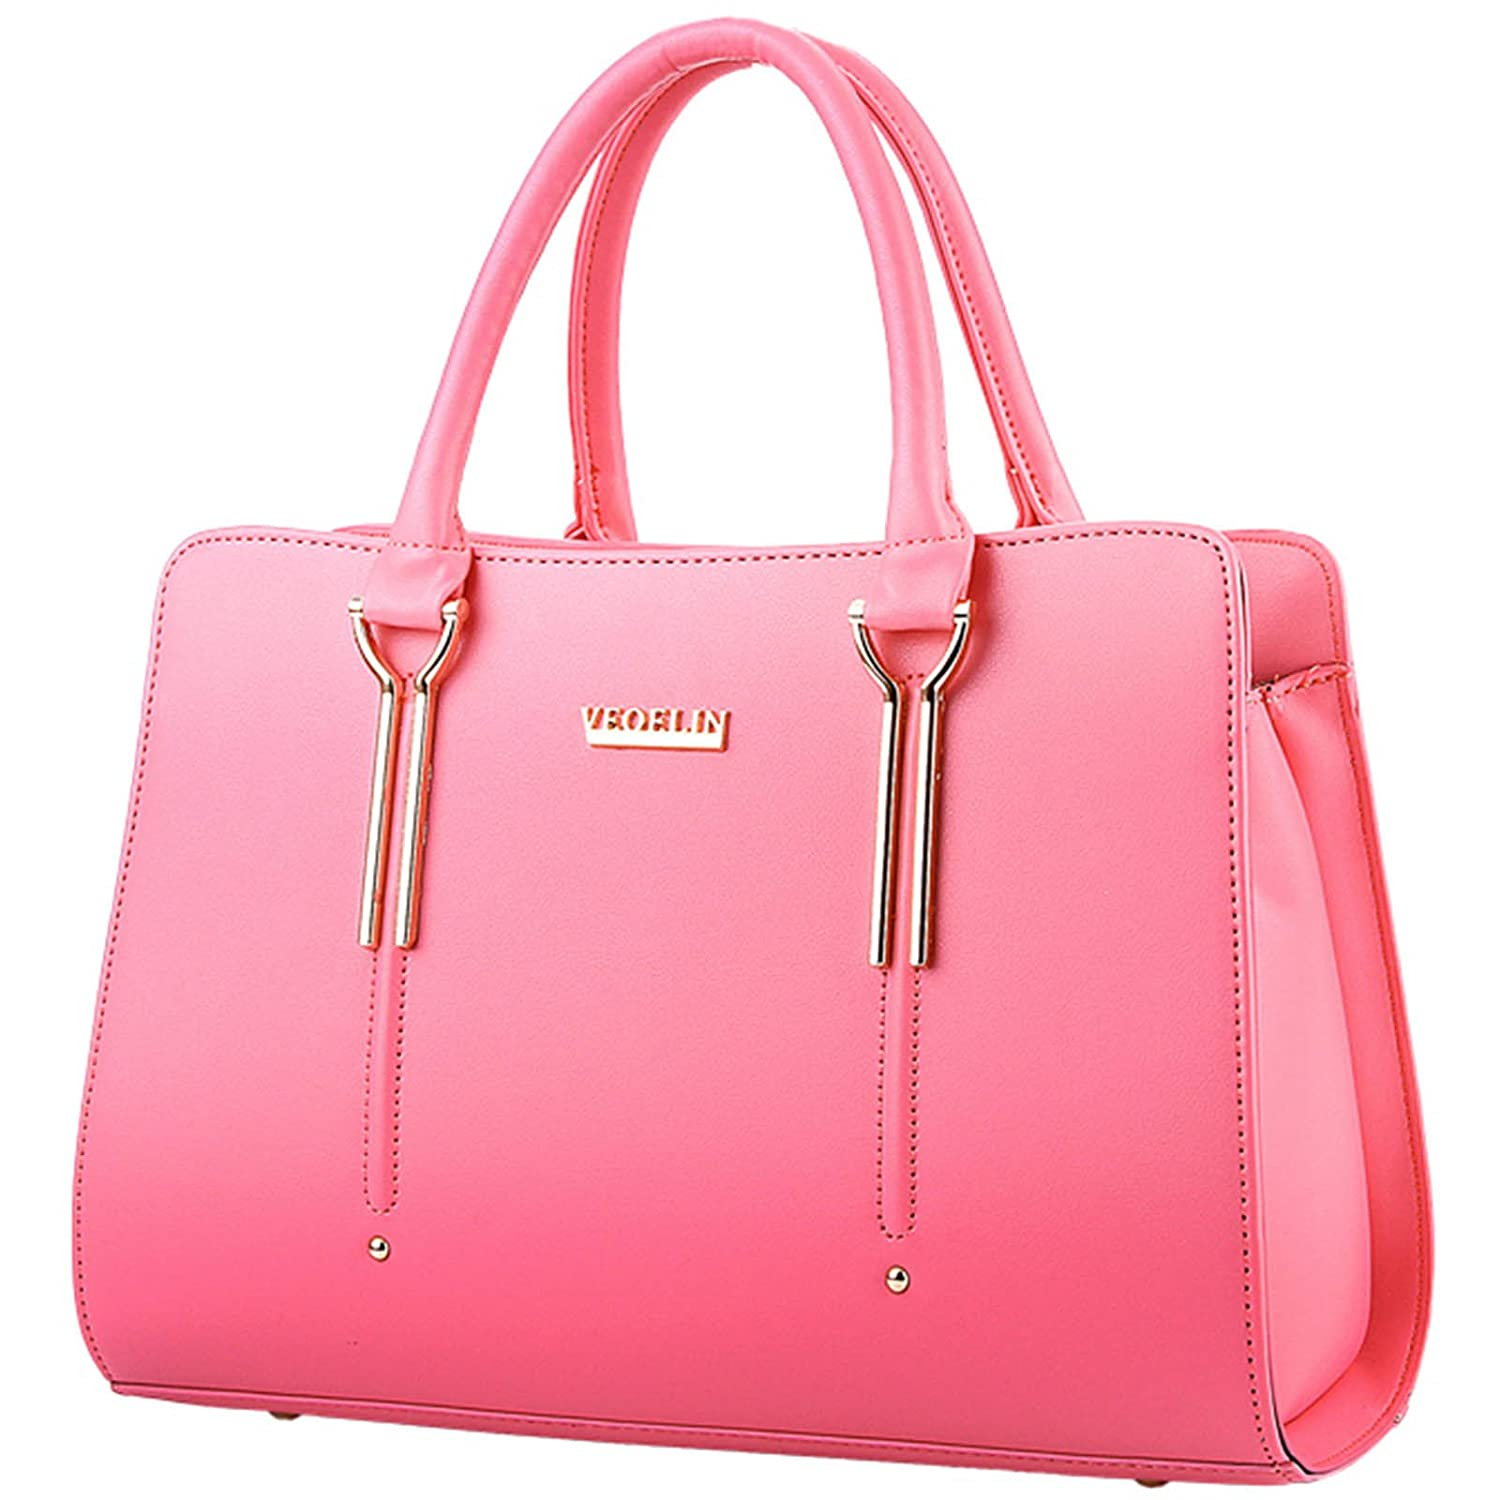 Girl Lady Women's Pu Leather Large Roomy Multifunctional Tote Shoulder Bag